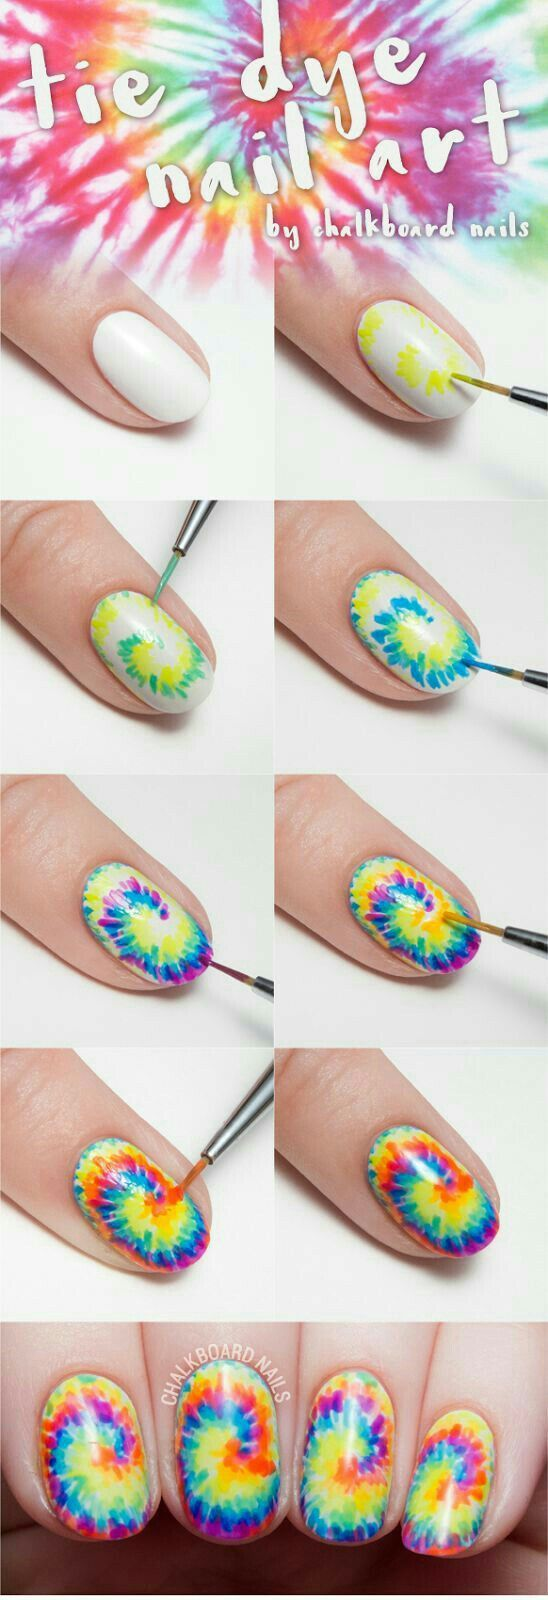 74 best rainbow - gay pride nail art images on pinterest | nail